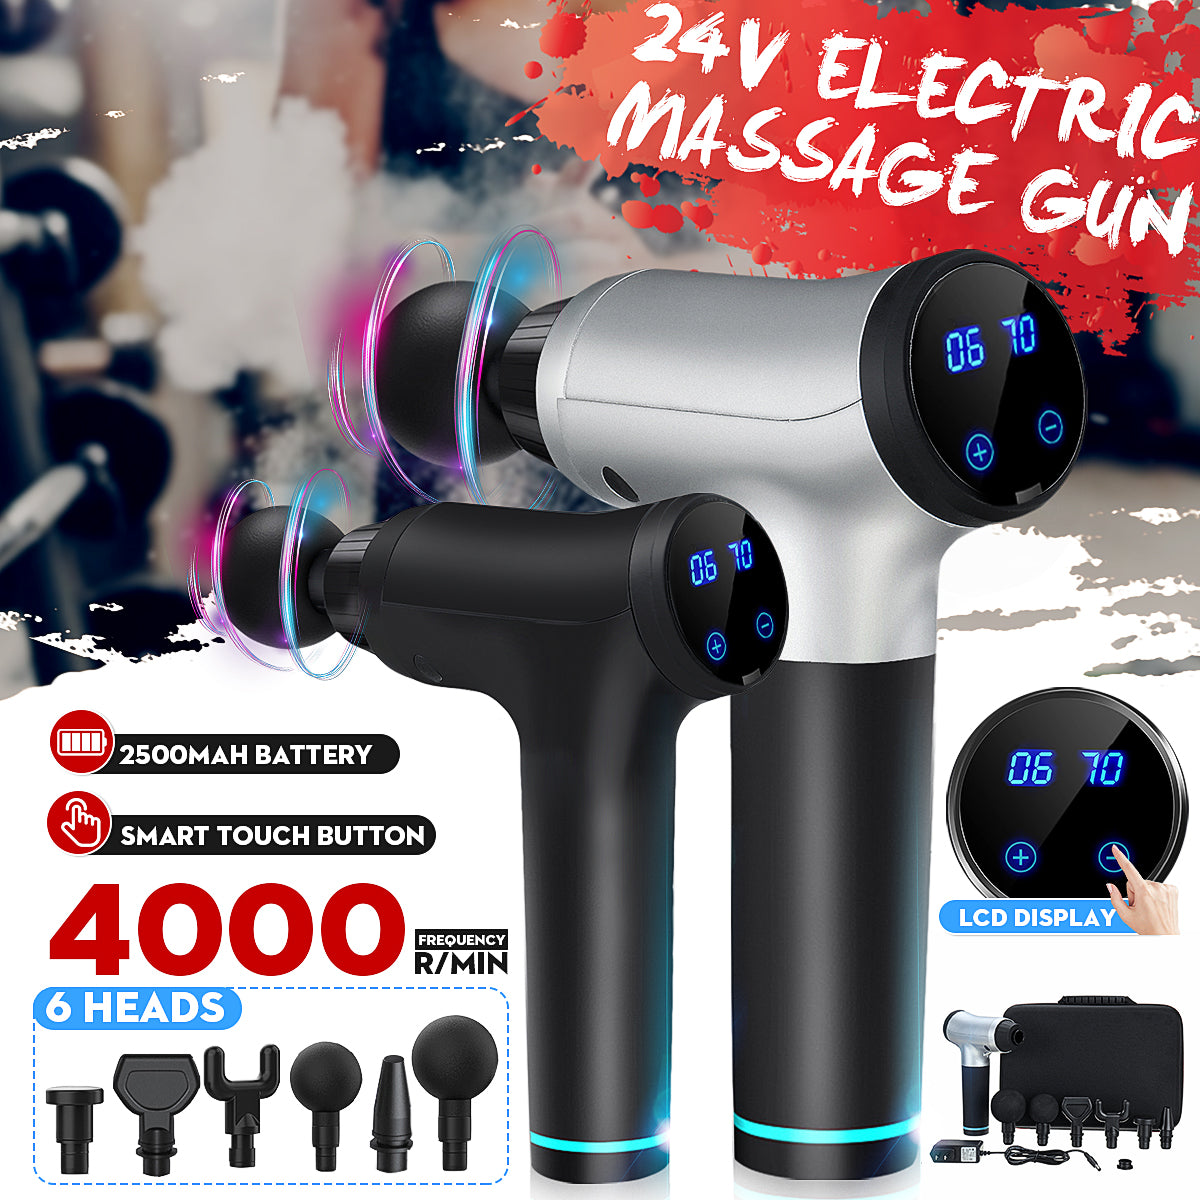 SelfCareX™ Massage Gun Deep Tissue Electric Massager With 6 Head